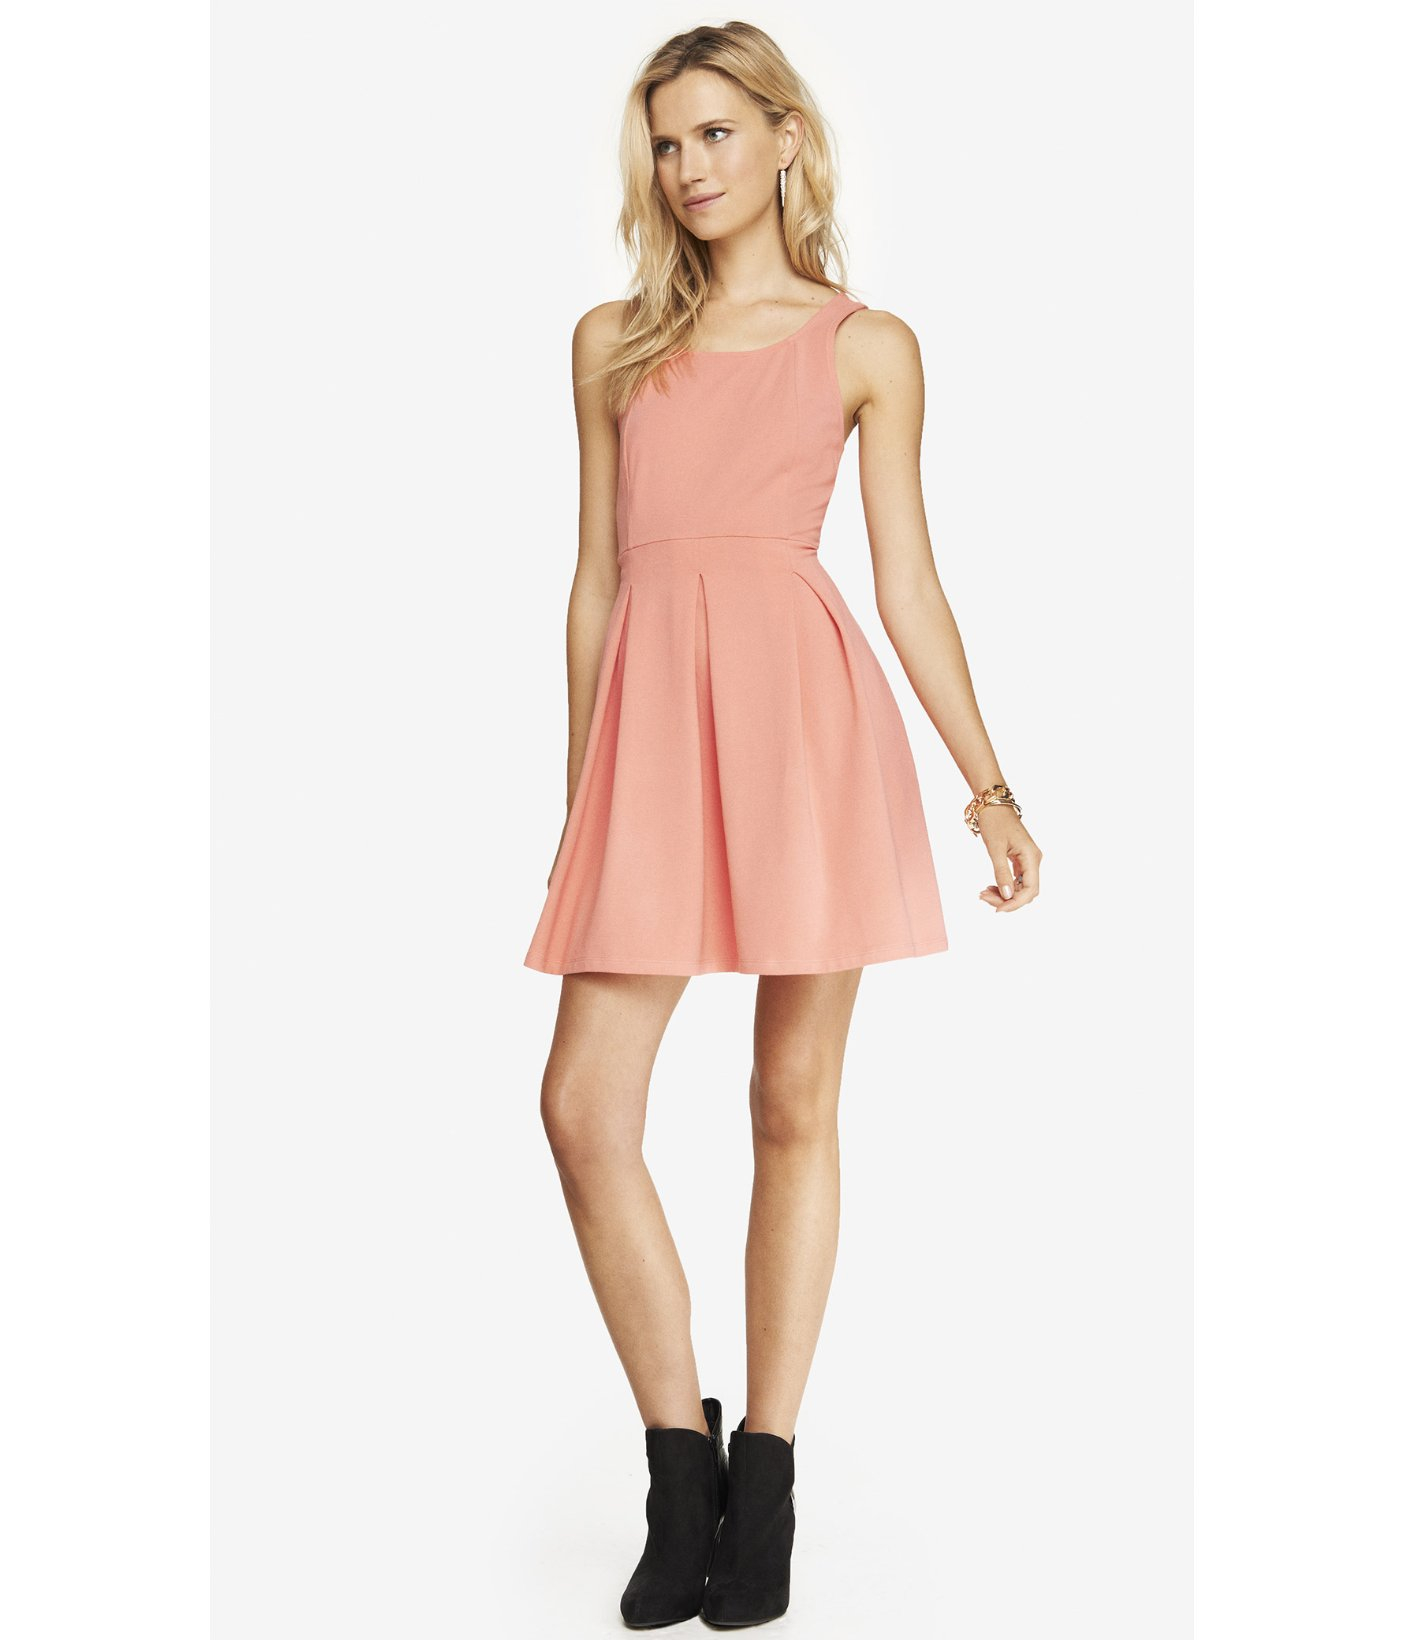 9912bad6e2 Express bright pink crisscross back skater dress product normal jpg  1404x1640 Bright skater dress